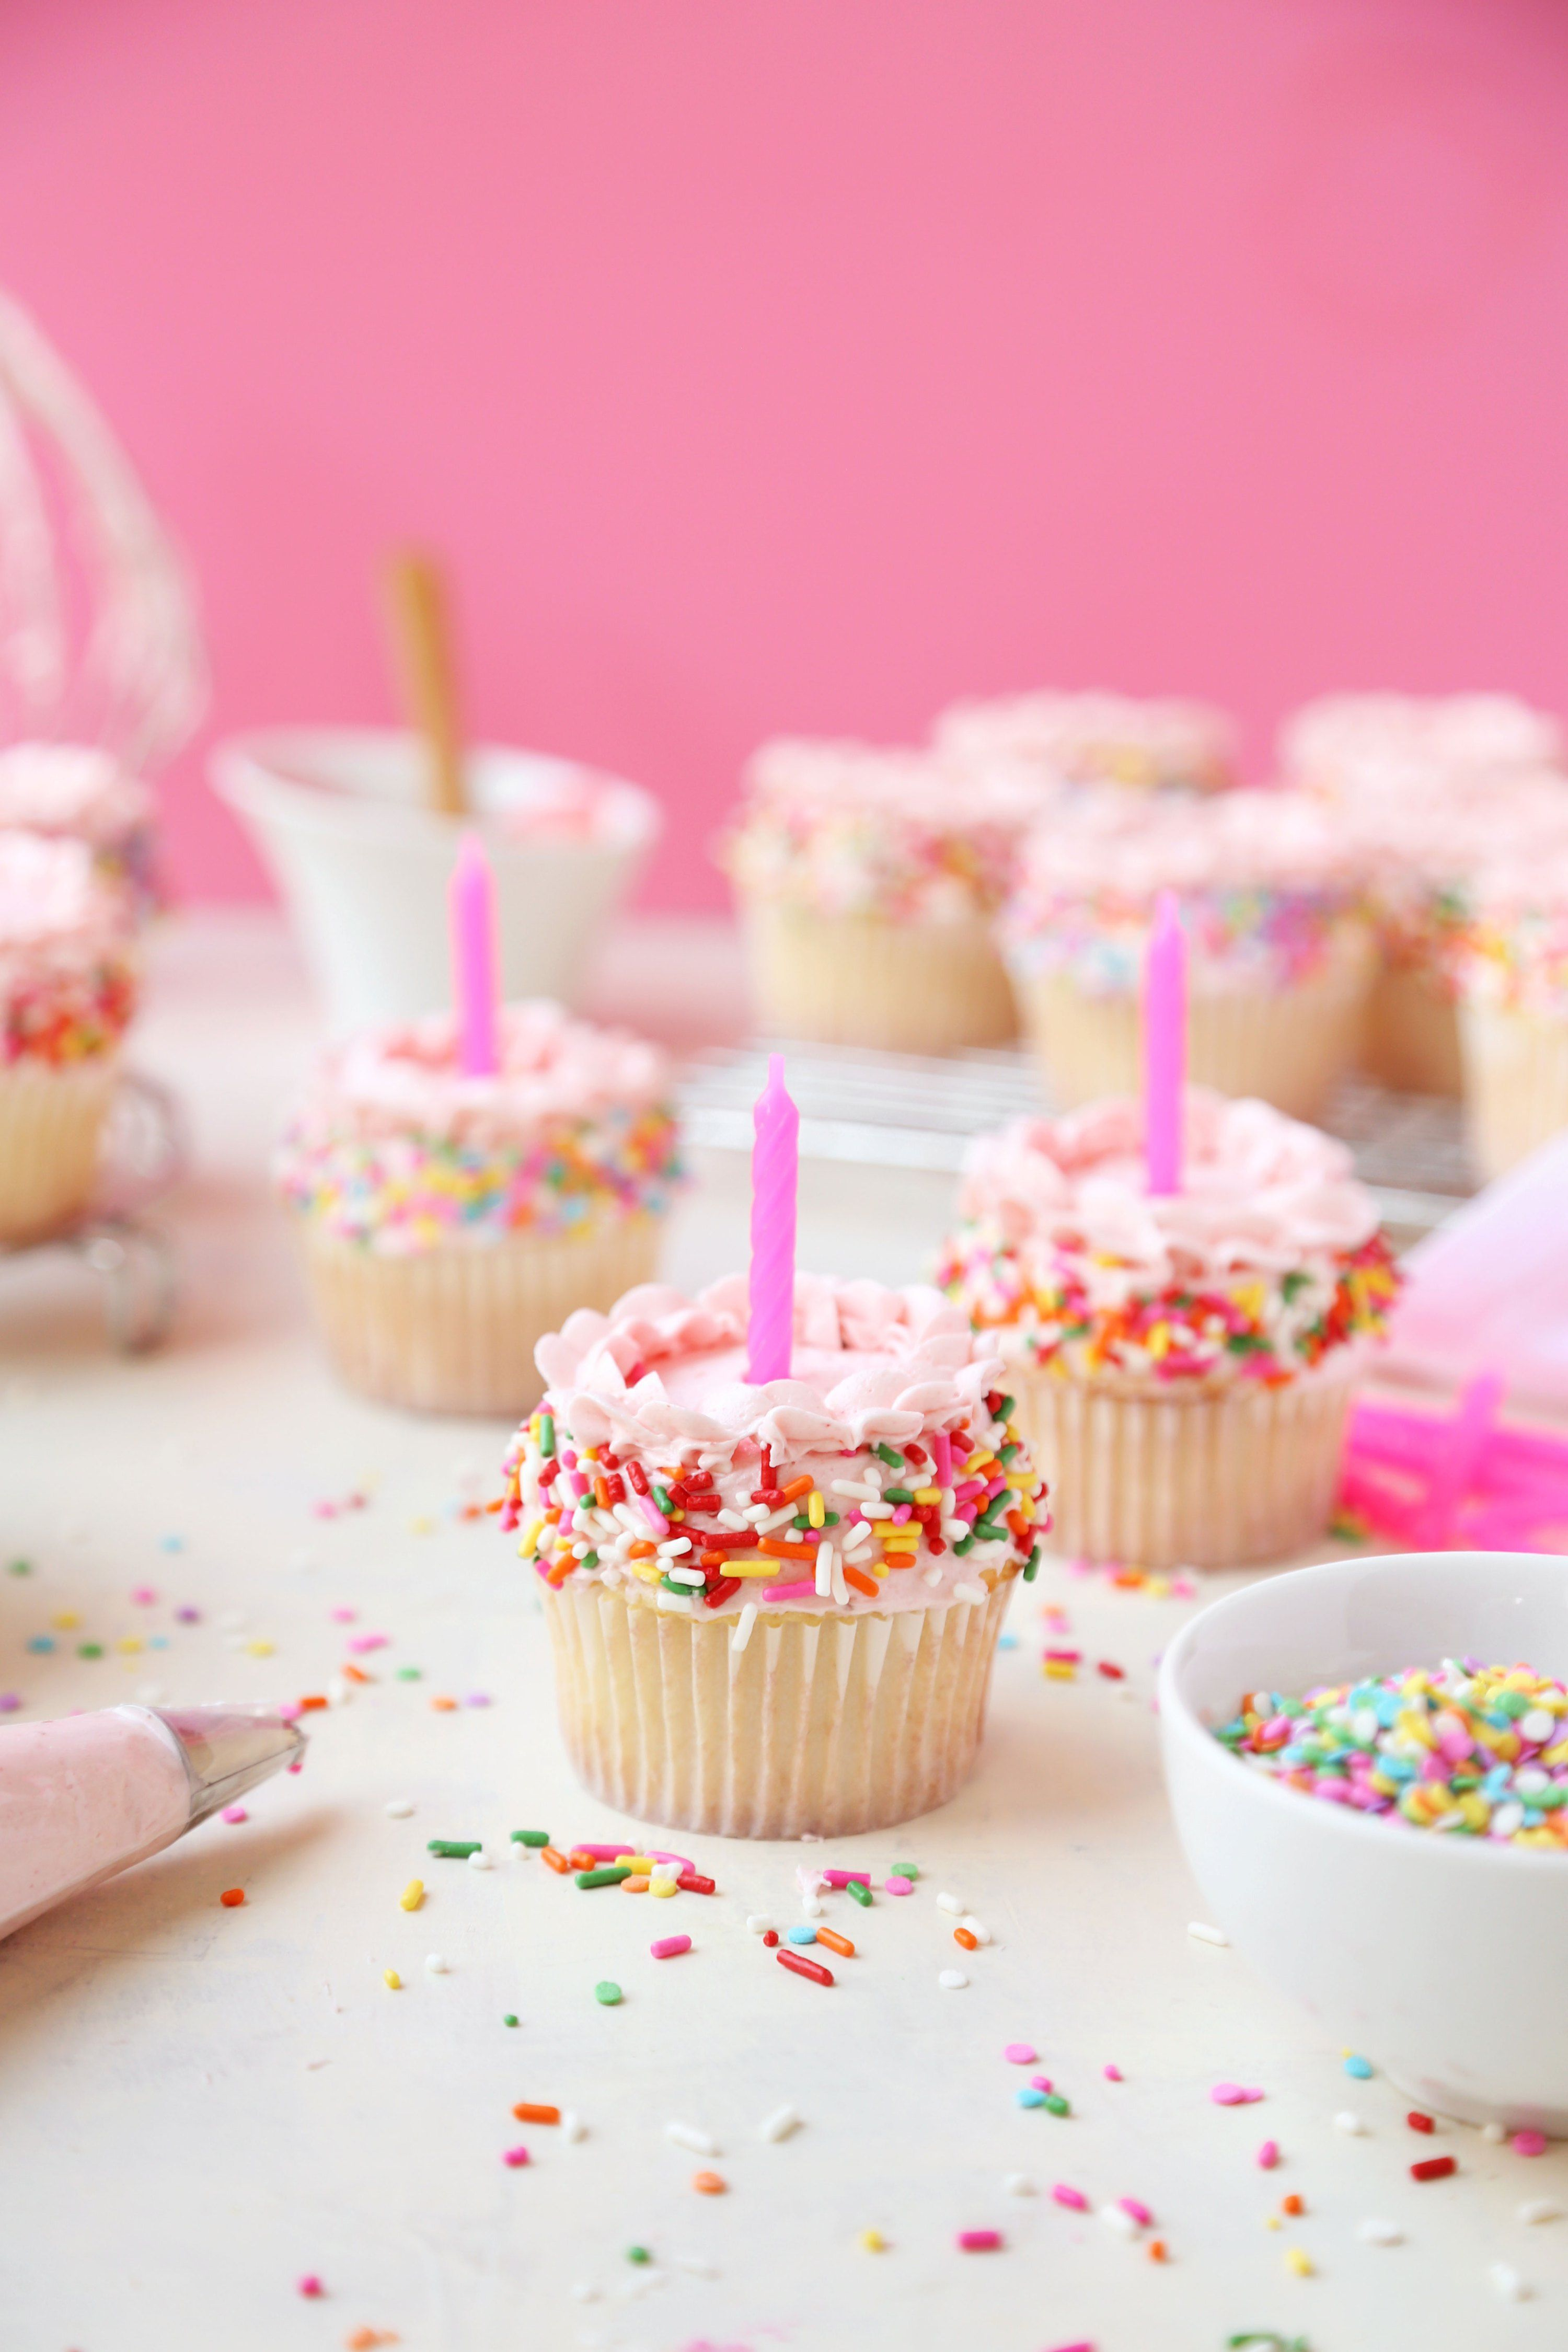 Vanilla Birthday Sprinkle Cupcakes are the perfect treat for any birthday, or any day of the week. Vanilla cake with a strawberry buttercream frosting.